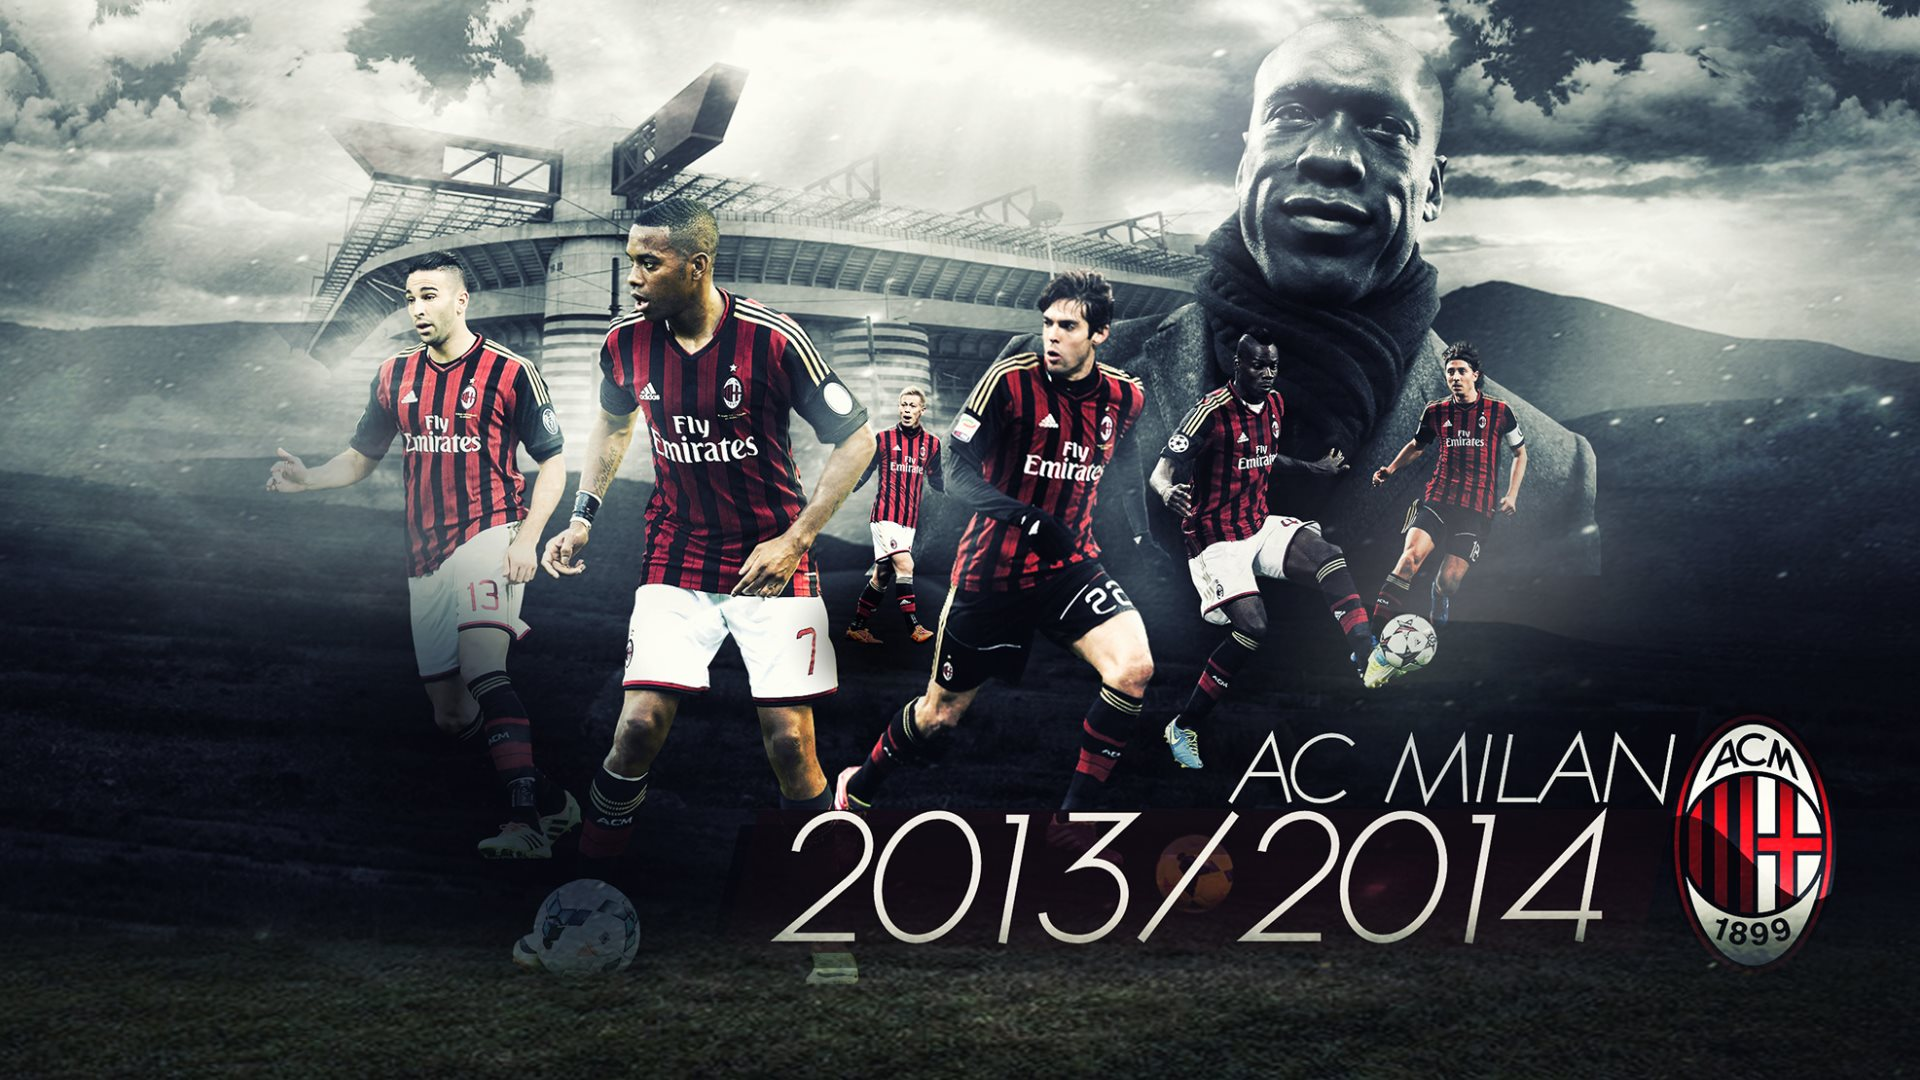 AC Milan 2014 Manchester United 2014 Wallpapers HD Wallpapers 1920x1080